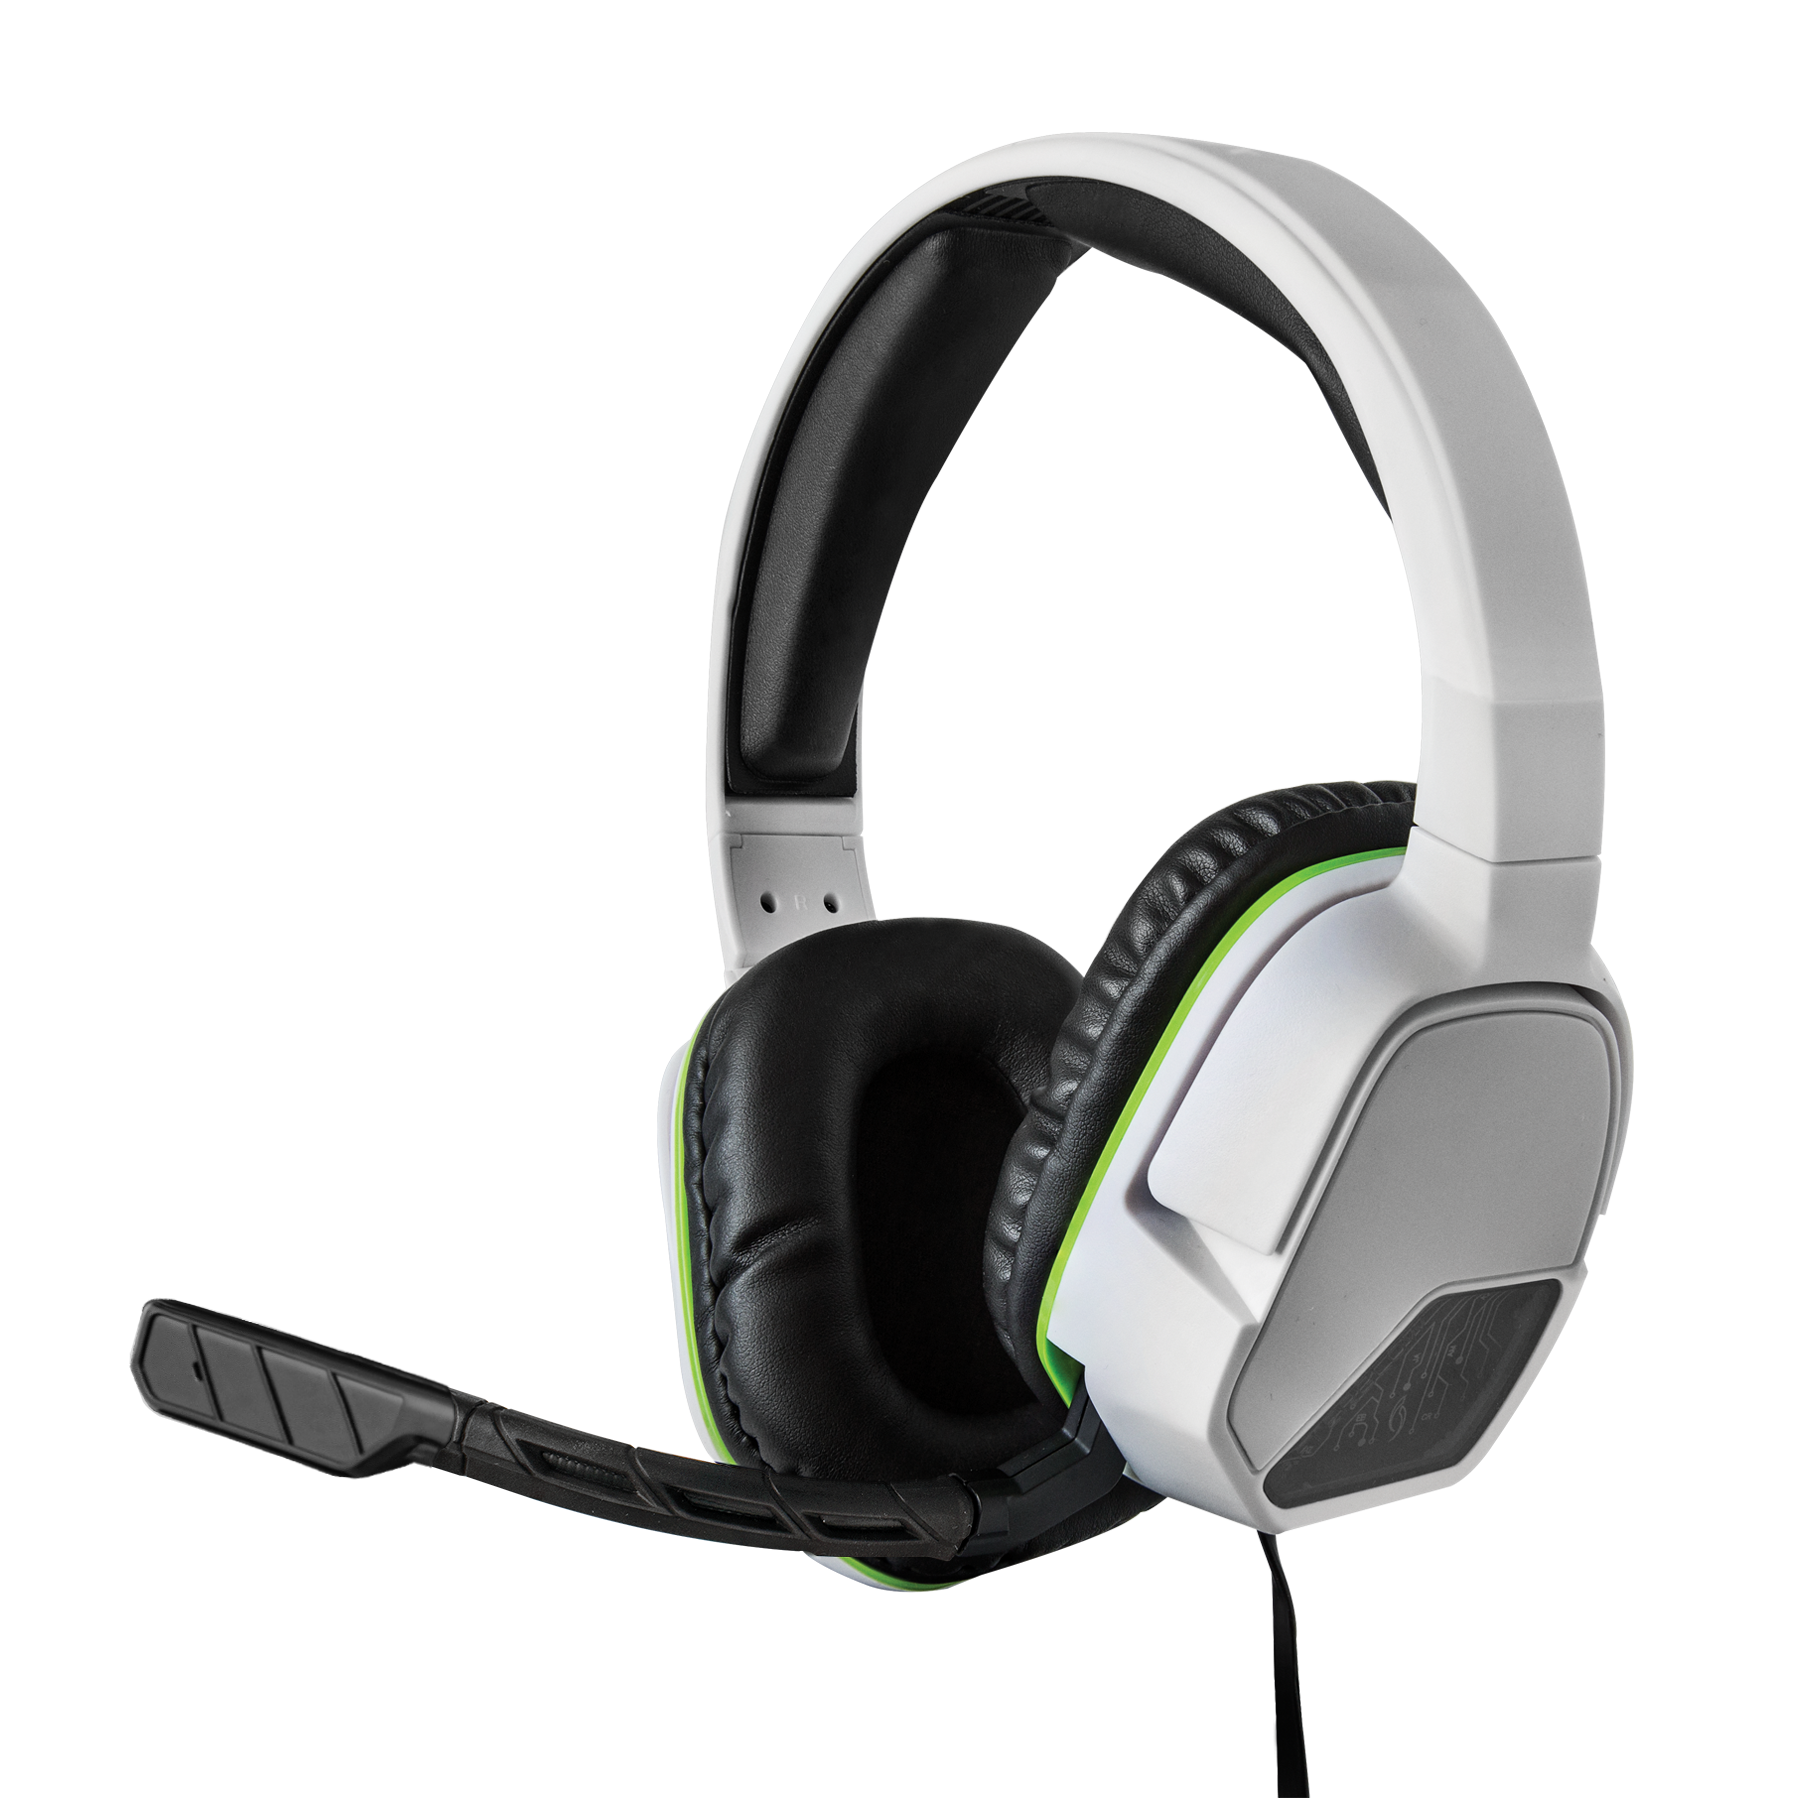 Xbox One Wired Headset Wiring Diagrams Schema Diagram Stereo Amazon Com Pdp Afterglow Lvl 3 Gaming 048 Wire